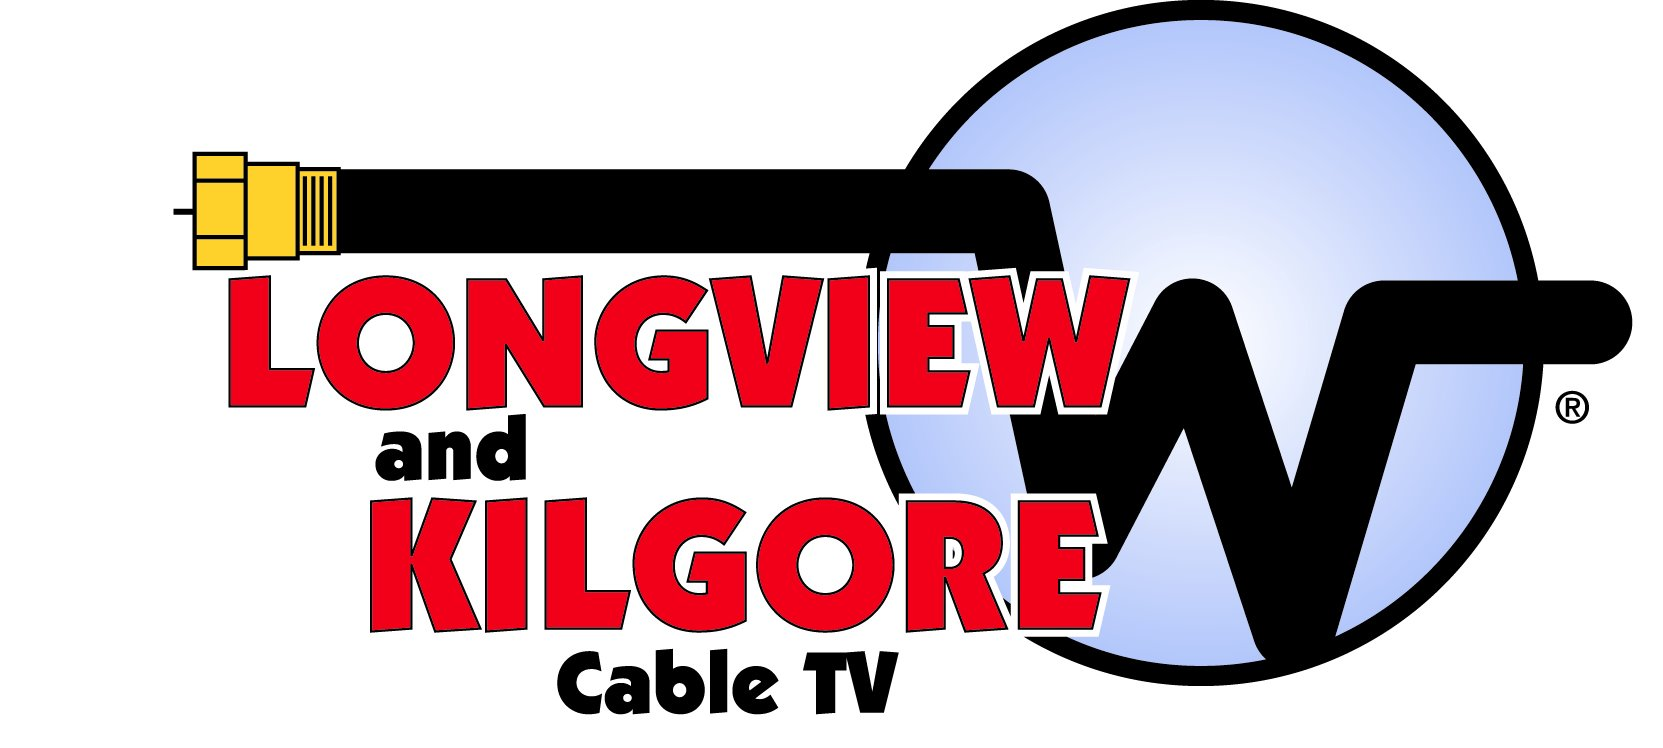 Residential Customer Support | Longview & Kilgore Cable TV | Account